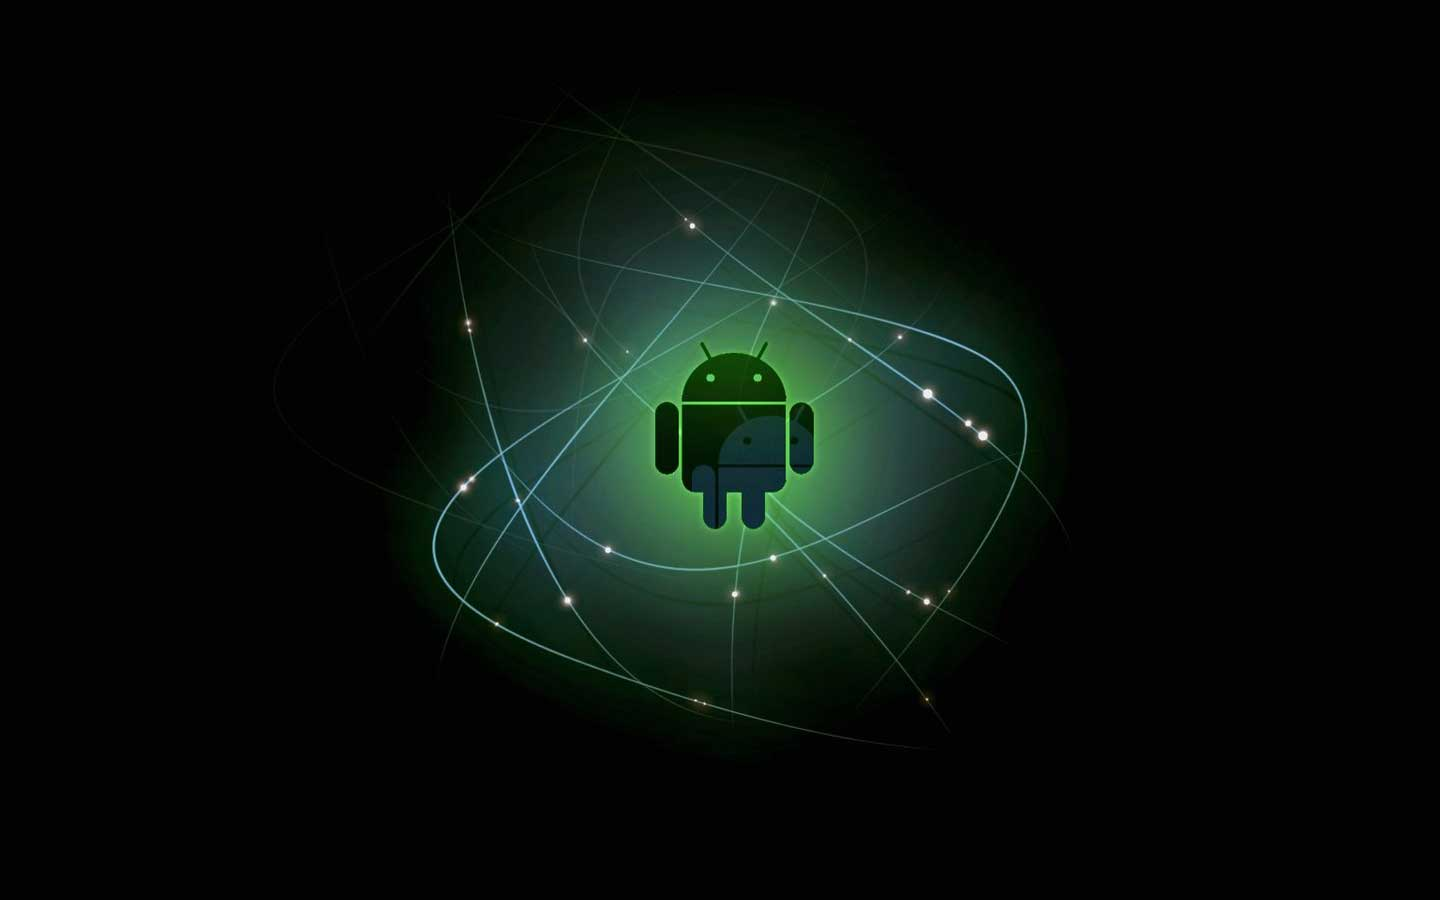 android background black color wallpaper details 1440x900